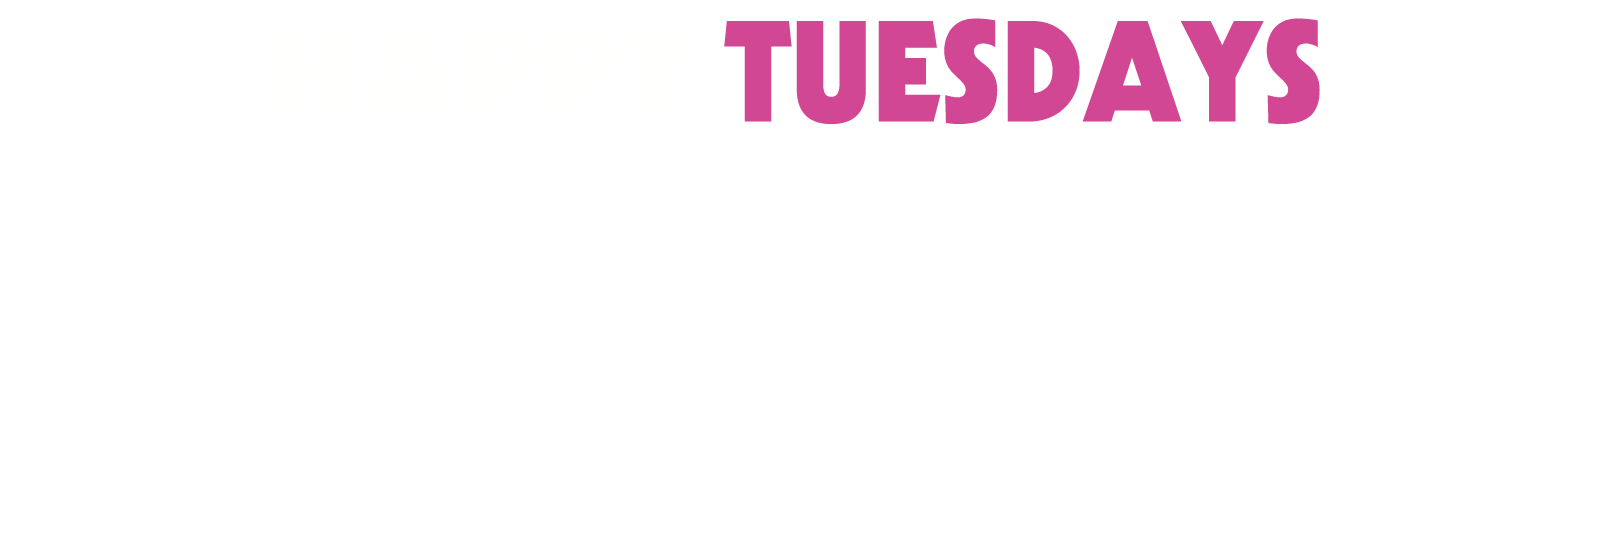 happy-tuesday-banner-design2.png